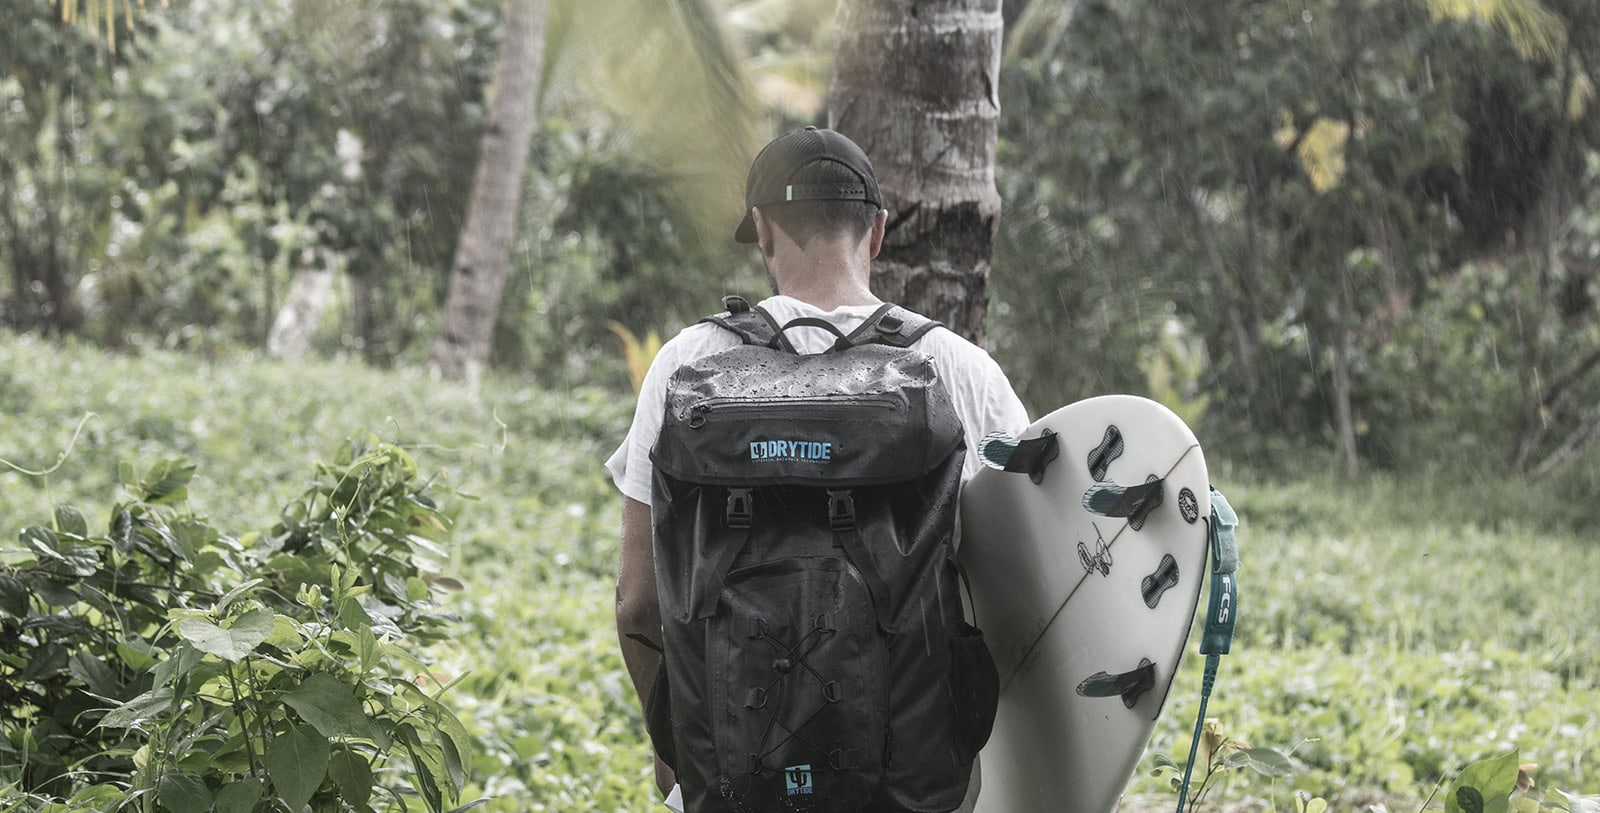 surfer with waterproof backpack